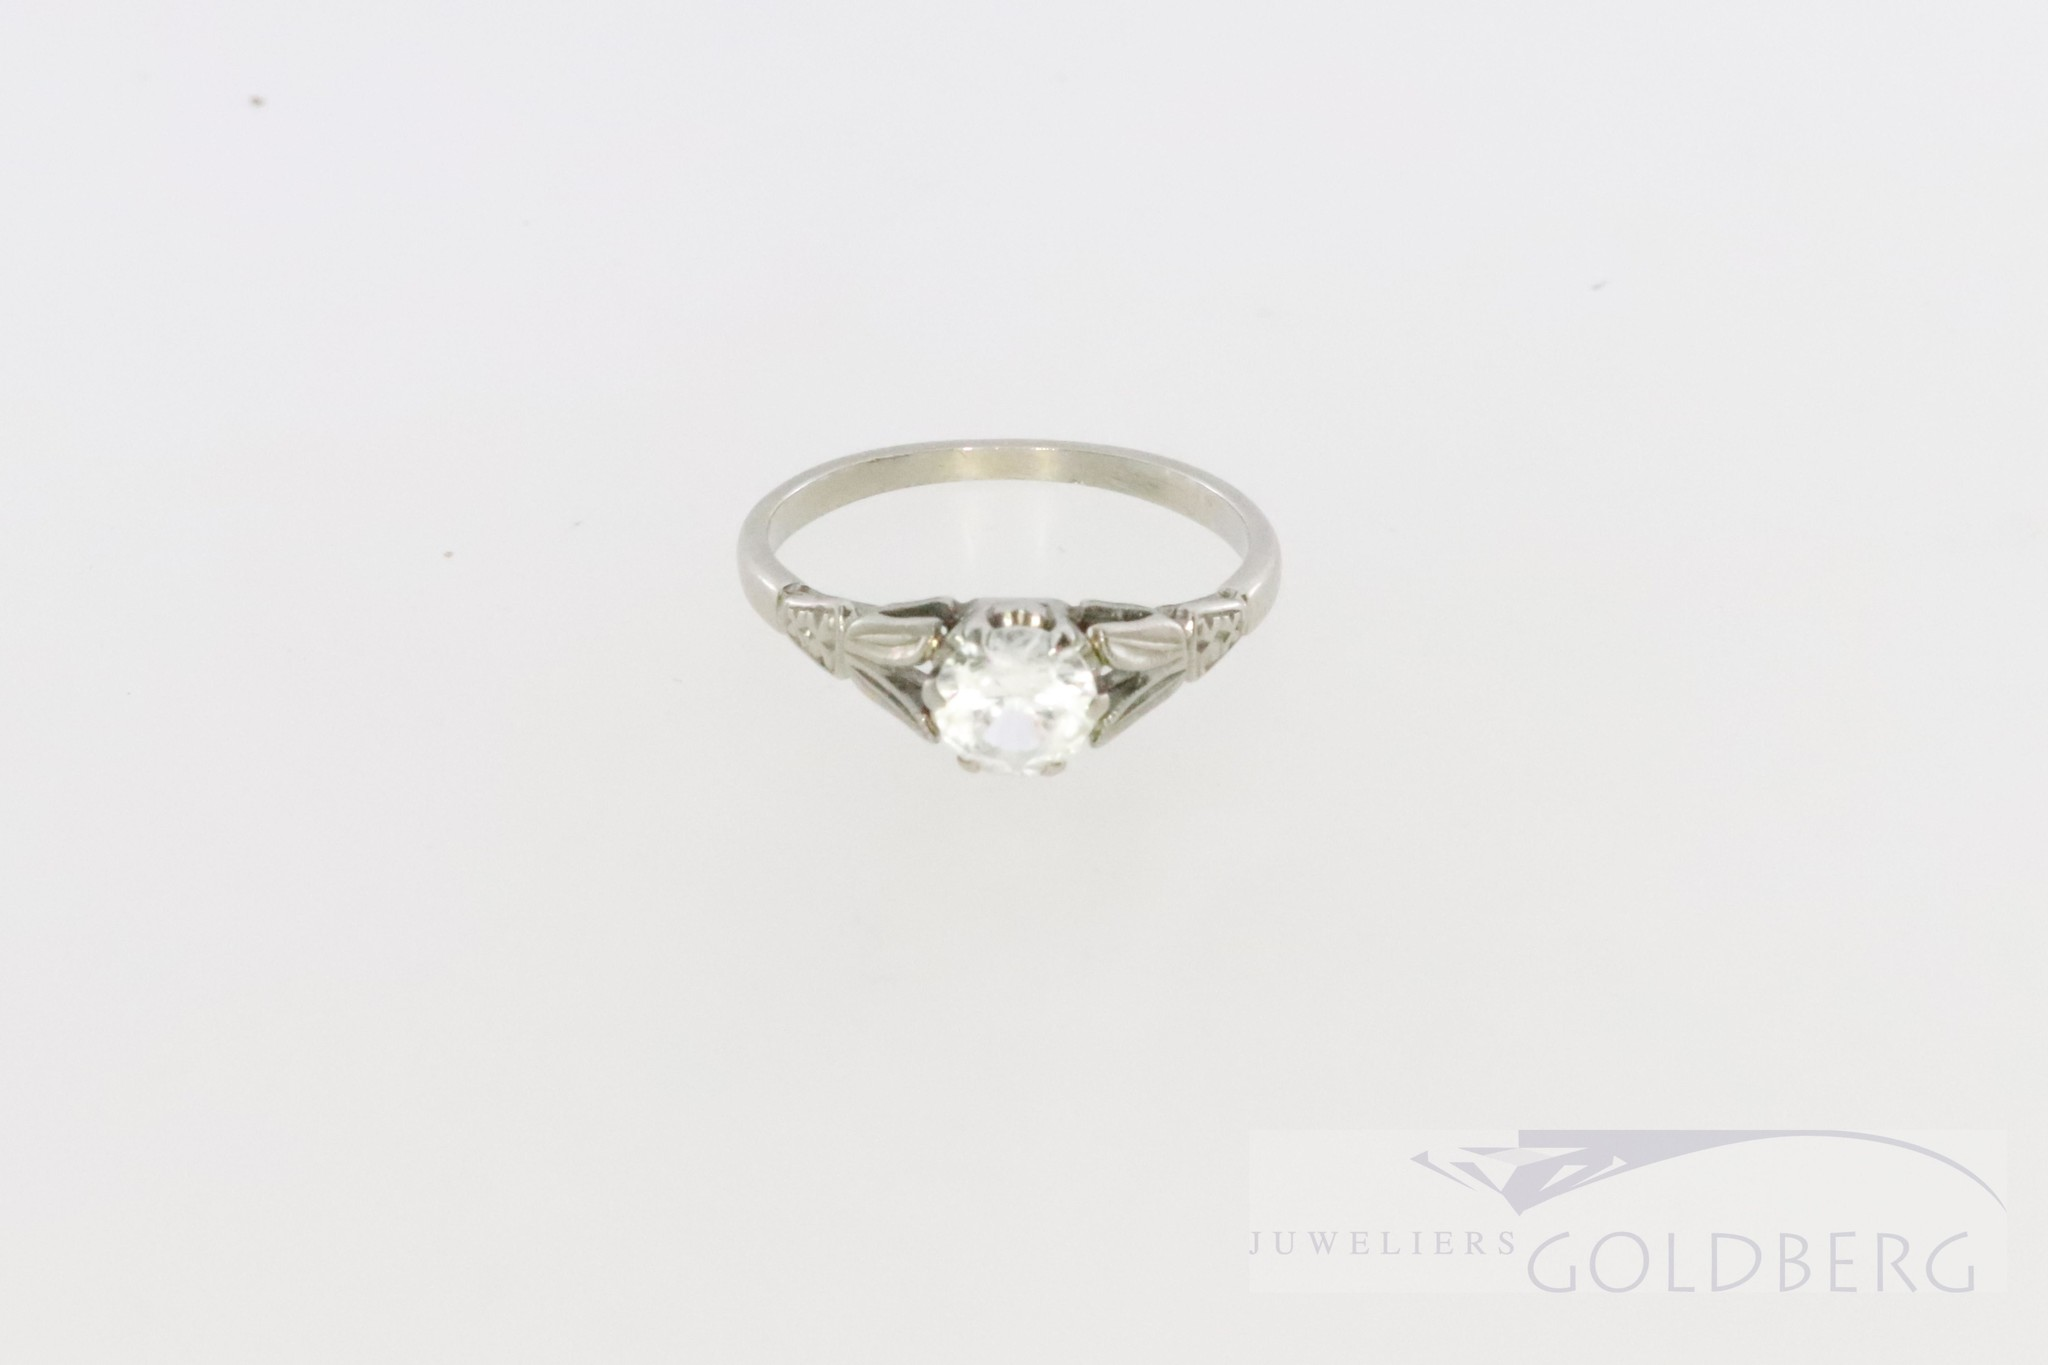 18k white gold solitaire ring with zirconia